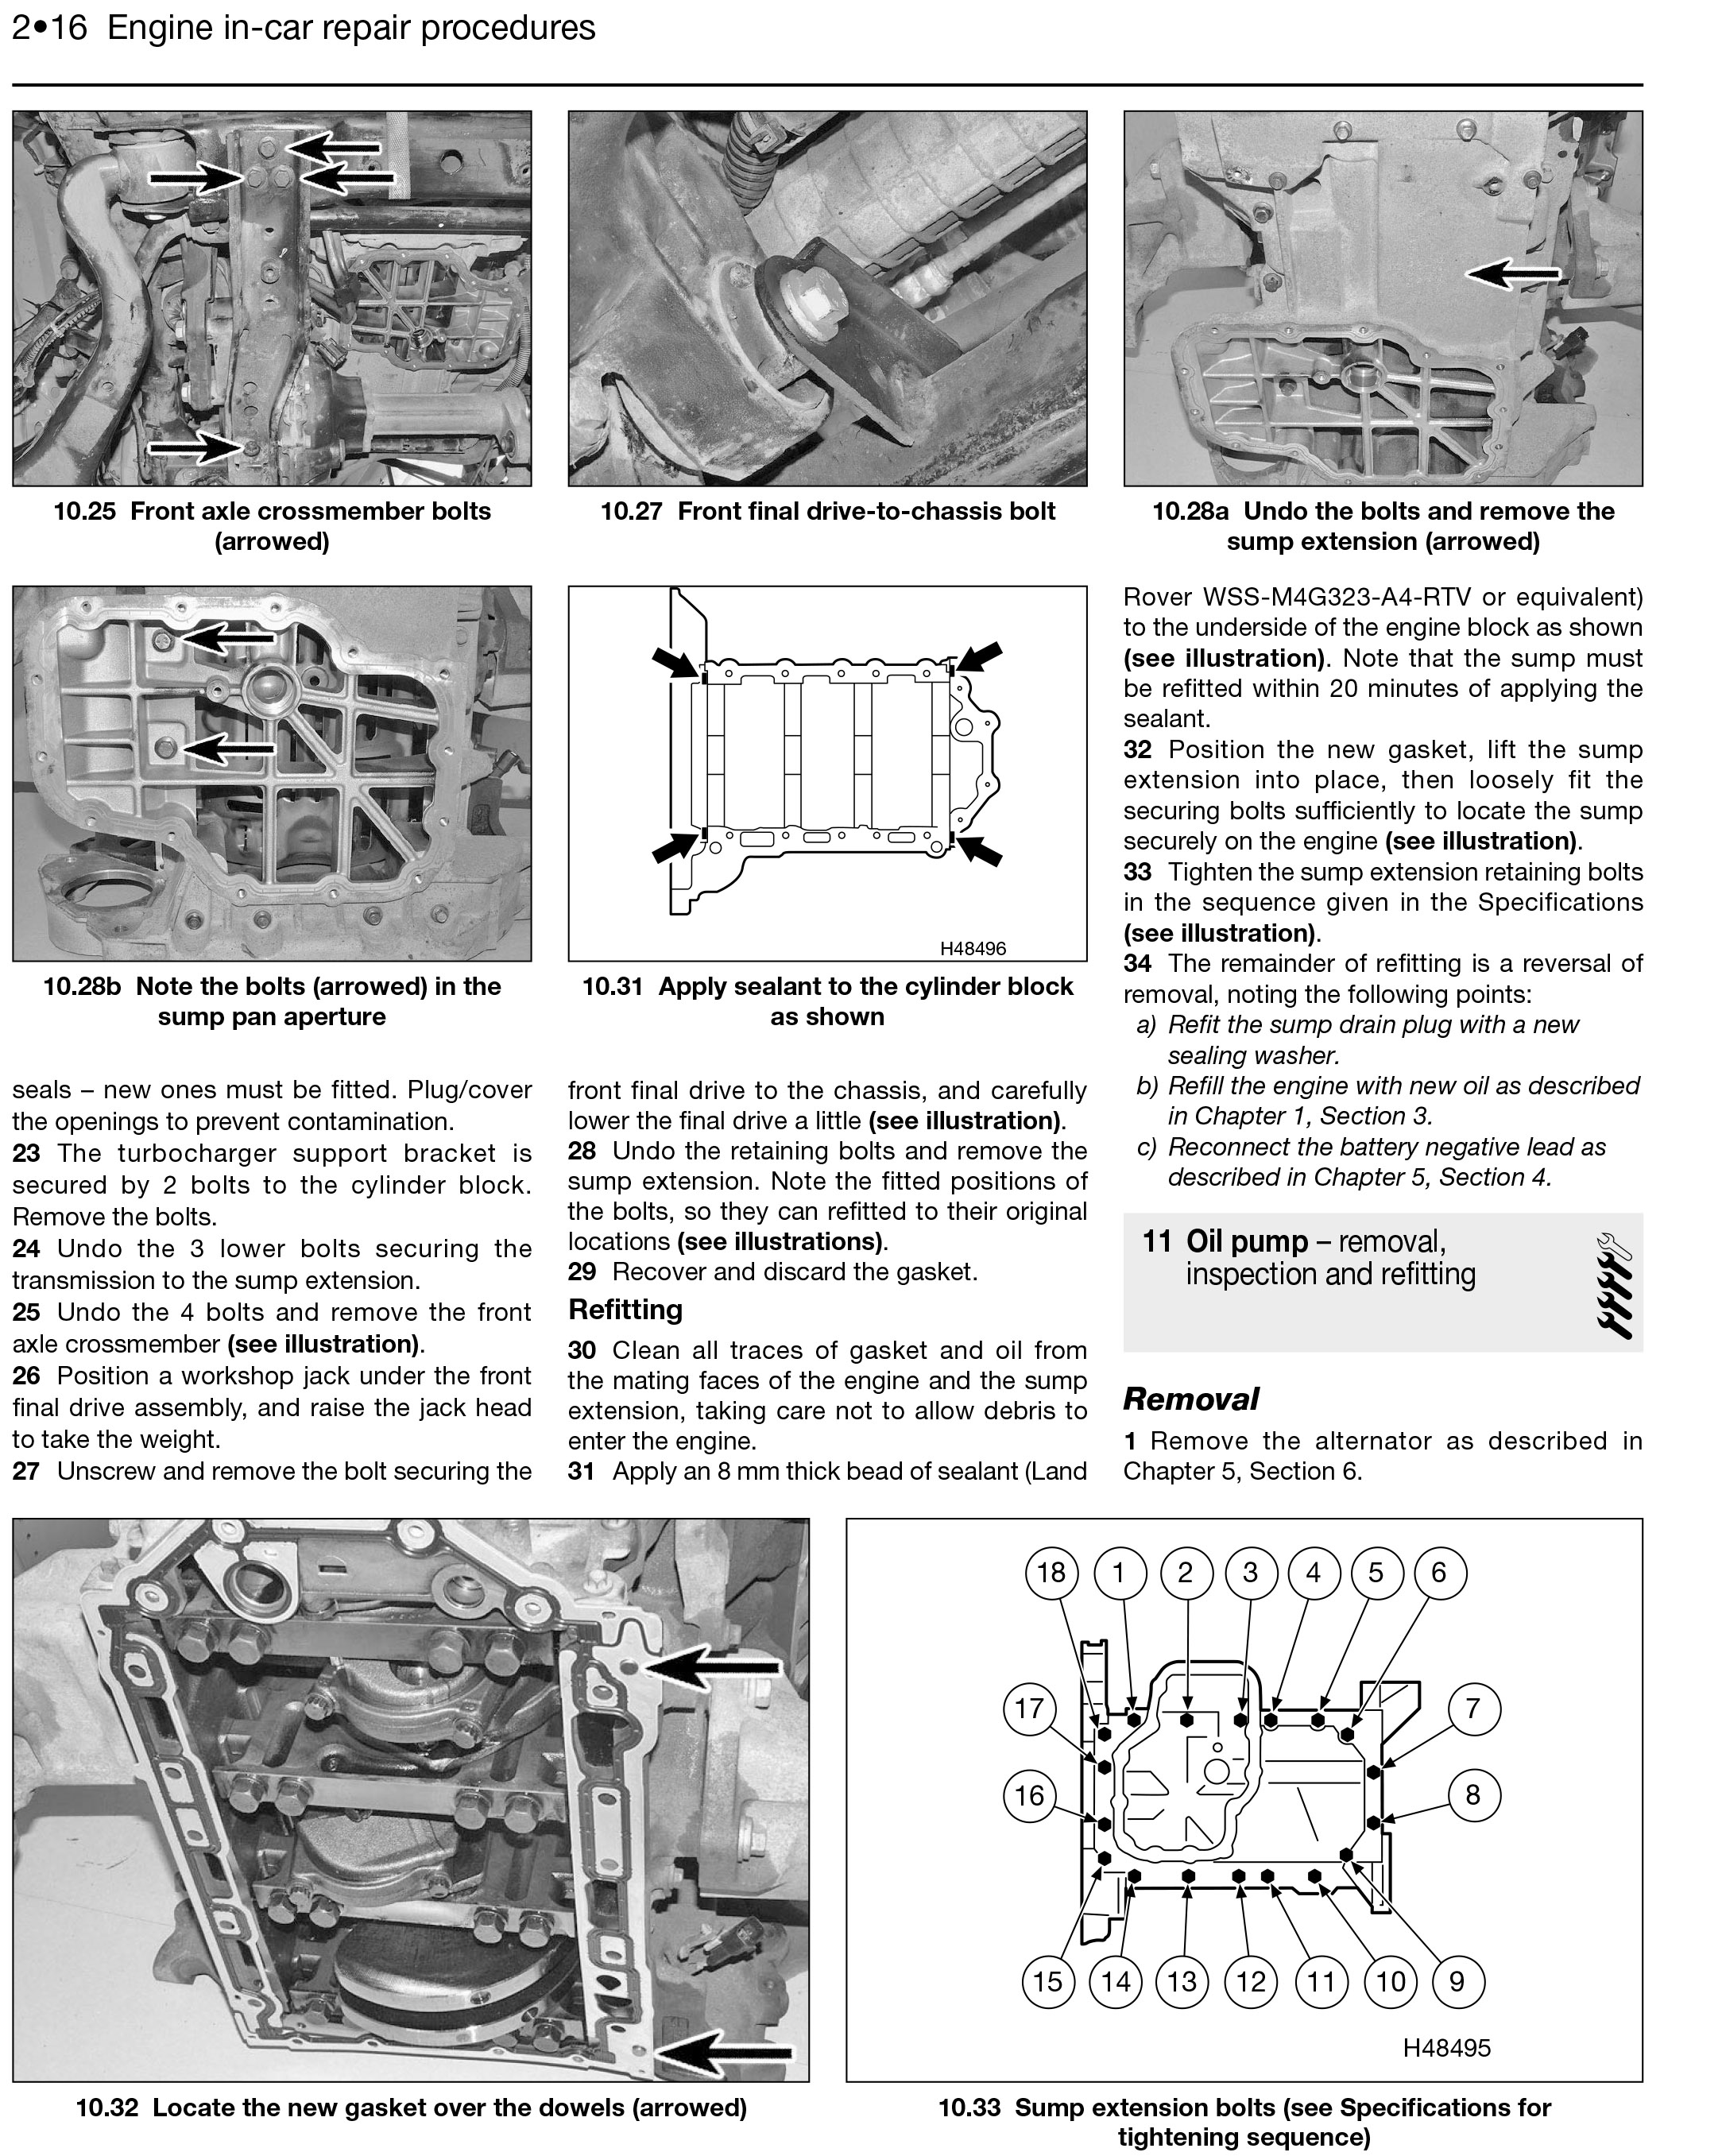 Land Rover Discovery 3 Owners Manual Lr3 Engine Diagram Haynes Publishing Rh Com Workshop Service Repair 4